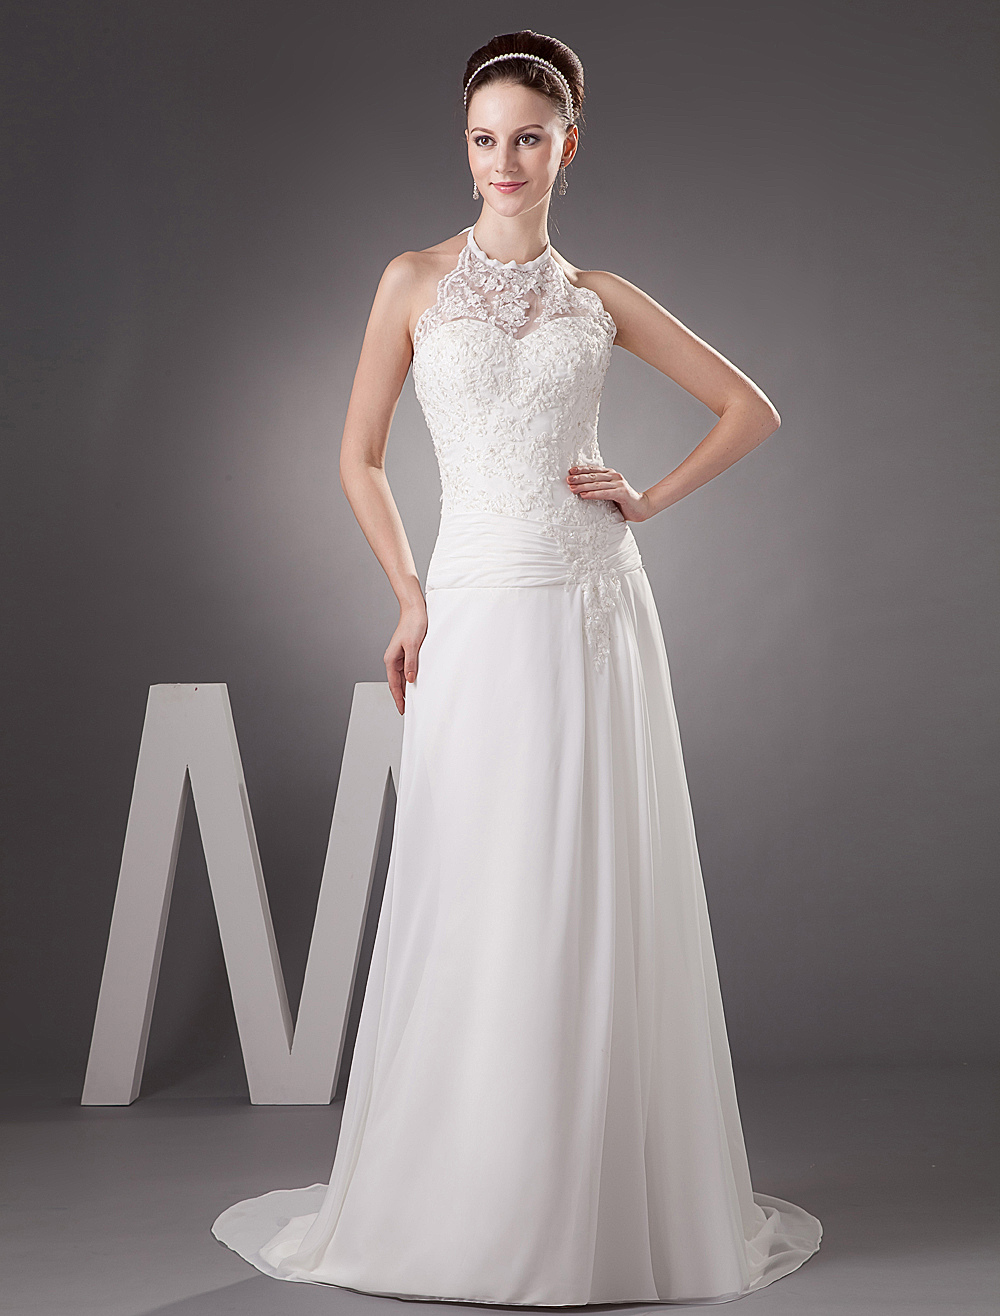 White Sheath Halter Beading Lace Chiffon Wedding Dress